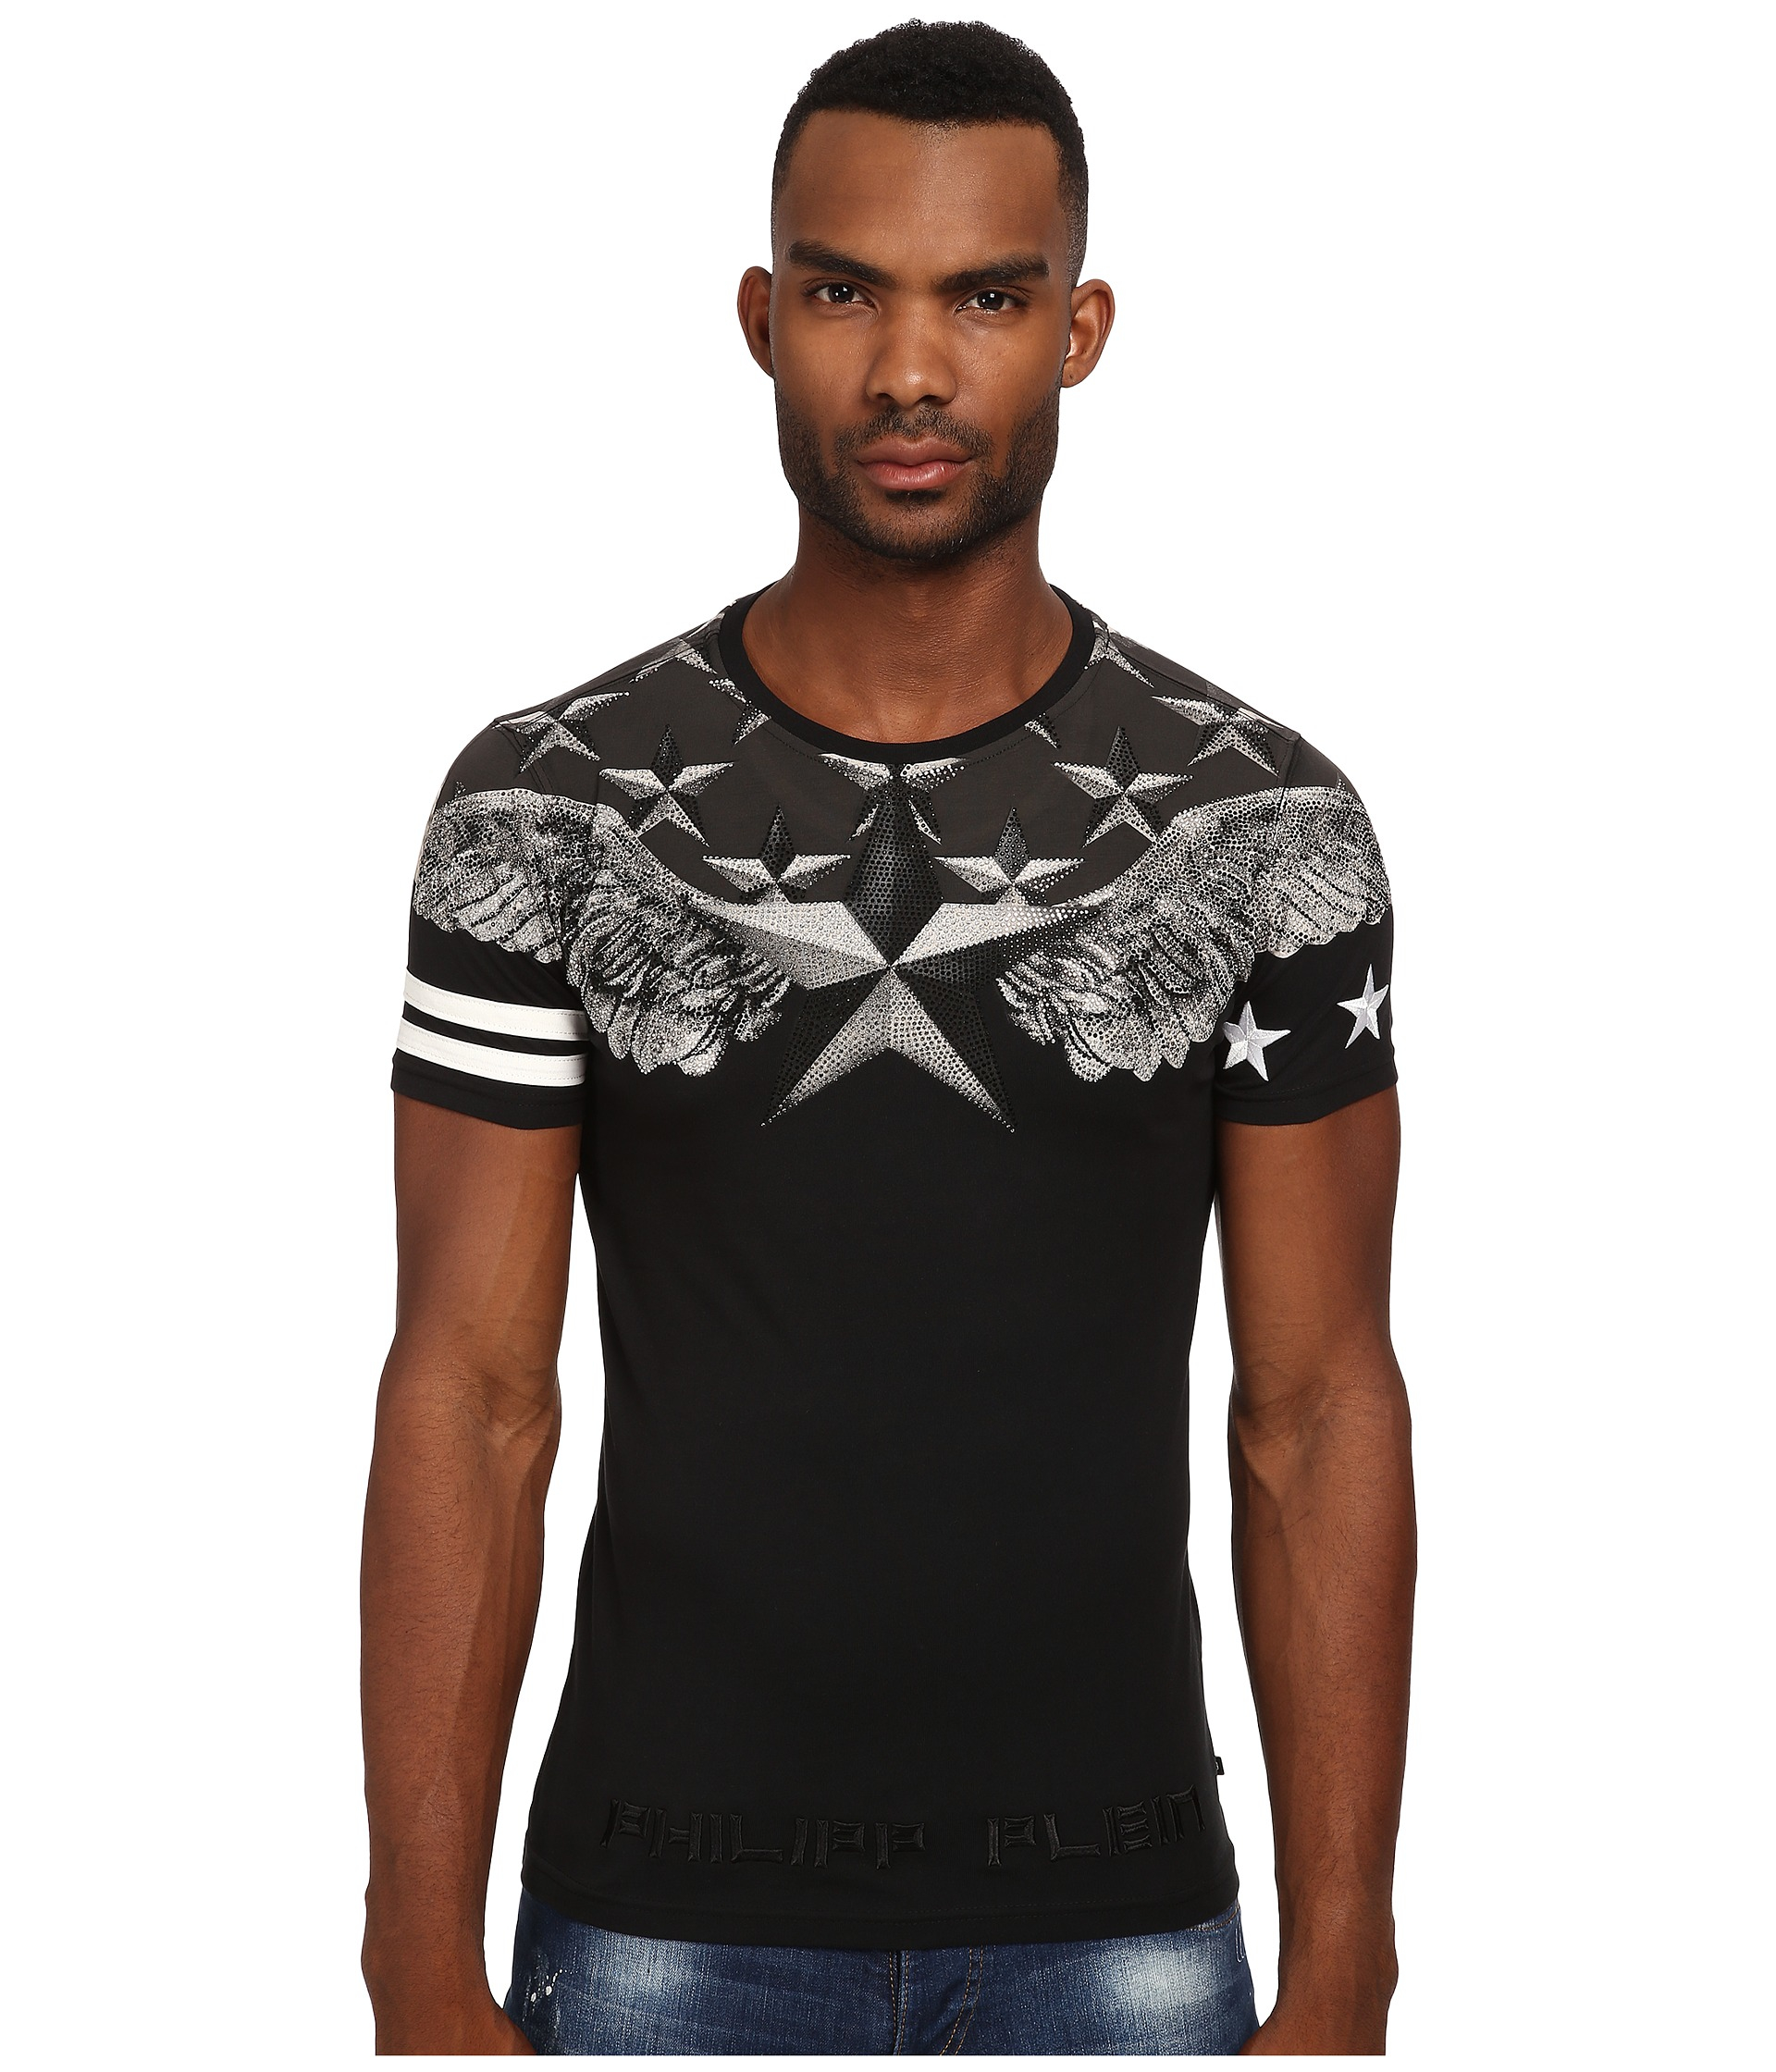 lyst philipp plein universe tee shirt in black for men. Black Bedroom Furniture Sets. Home Design Ideas